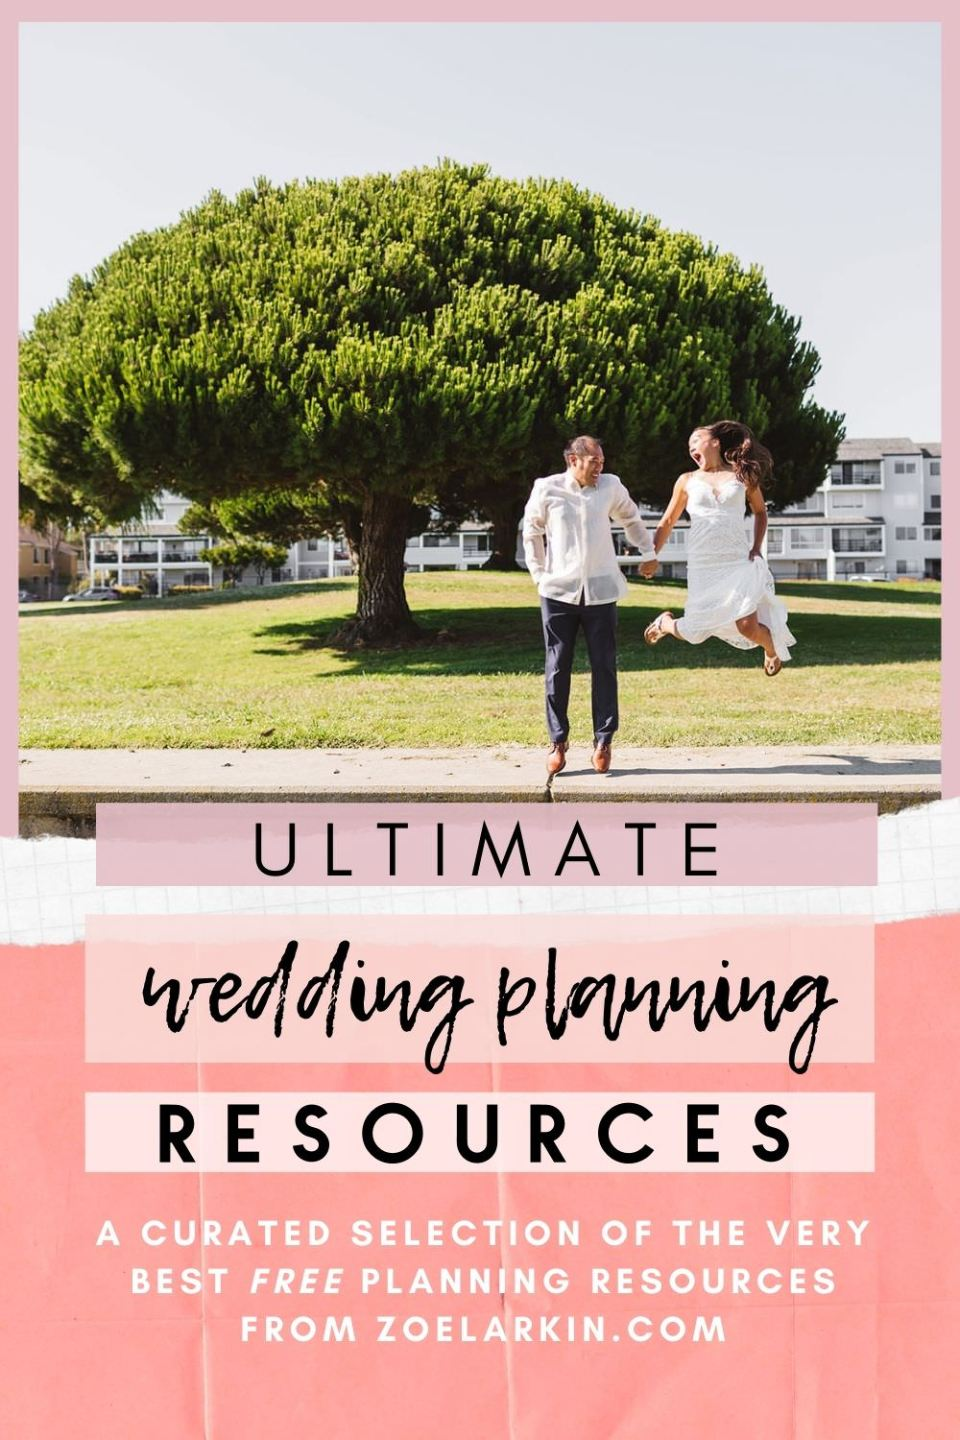 The complete guide to planning your wedding - ALL my most helpful blog posts by wedding expert Zoe Larkin. My curated selection of wedding resources is THE guide for you. Everything from wedding budgeting, understanding vendor pricing, maximizing your wedding day experience + many tips for getting the best wedding photos! No matter who you choose as your wedding photographer, my wedding planning resources will be VERY helpful #weddingtips #weddingplanning #weddingphotography | zoelarkin.com